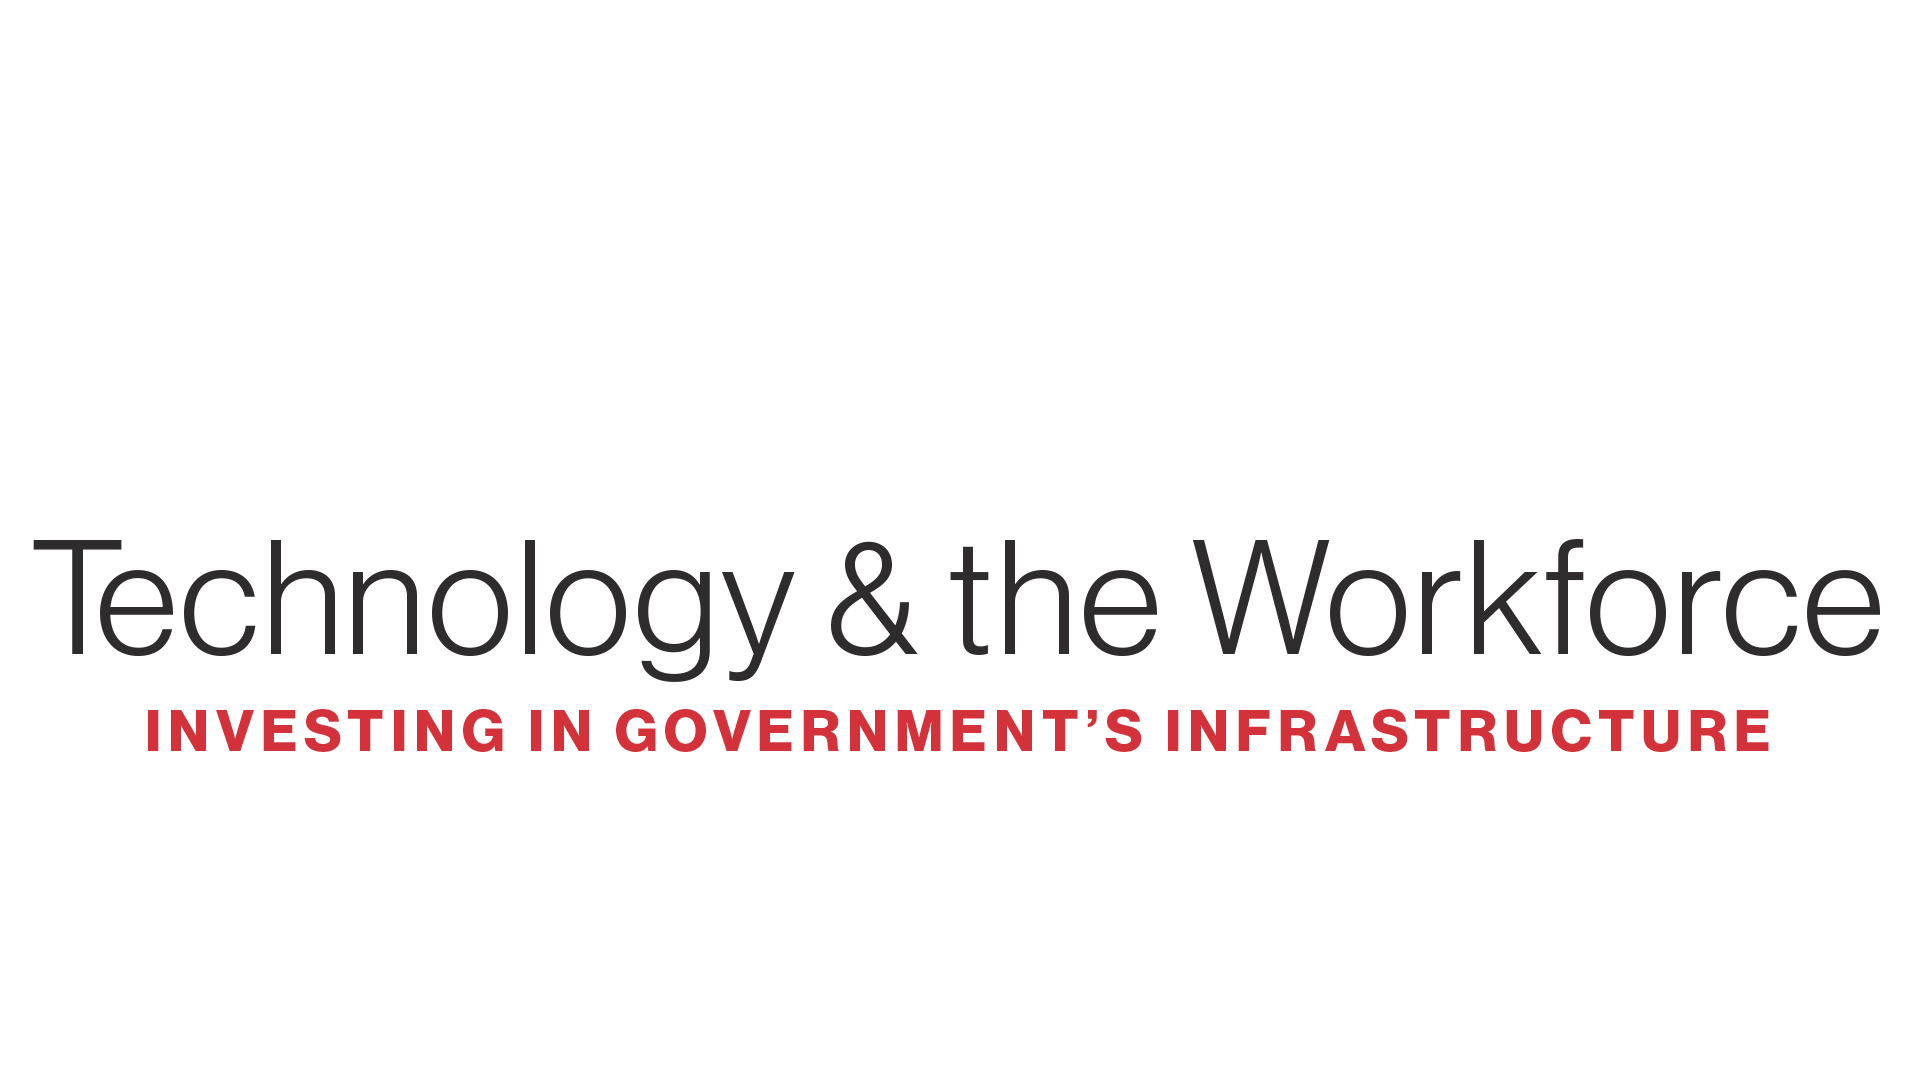 Technology and the Workforce: Investing in Government's